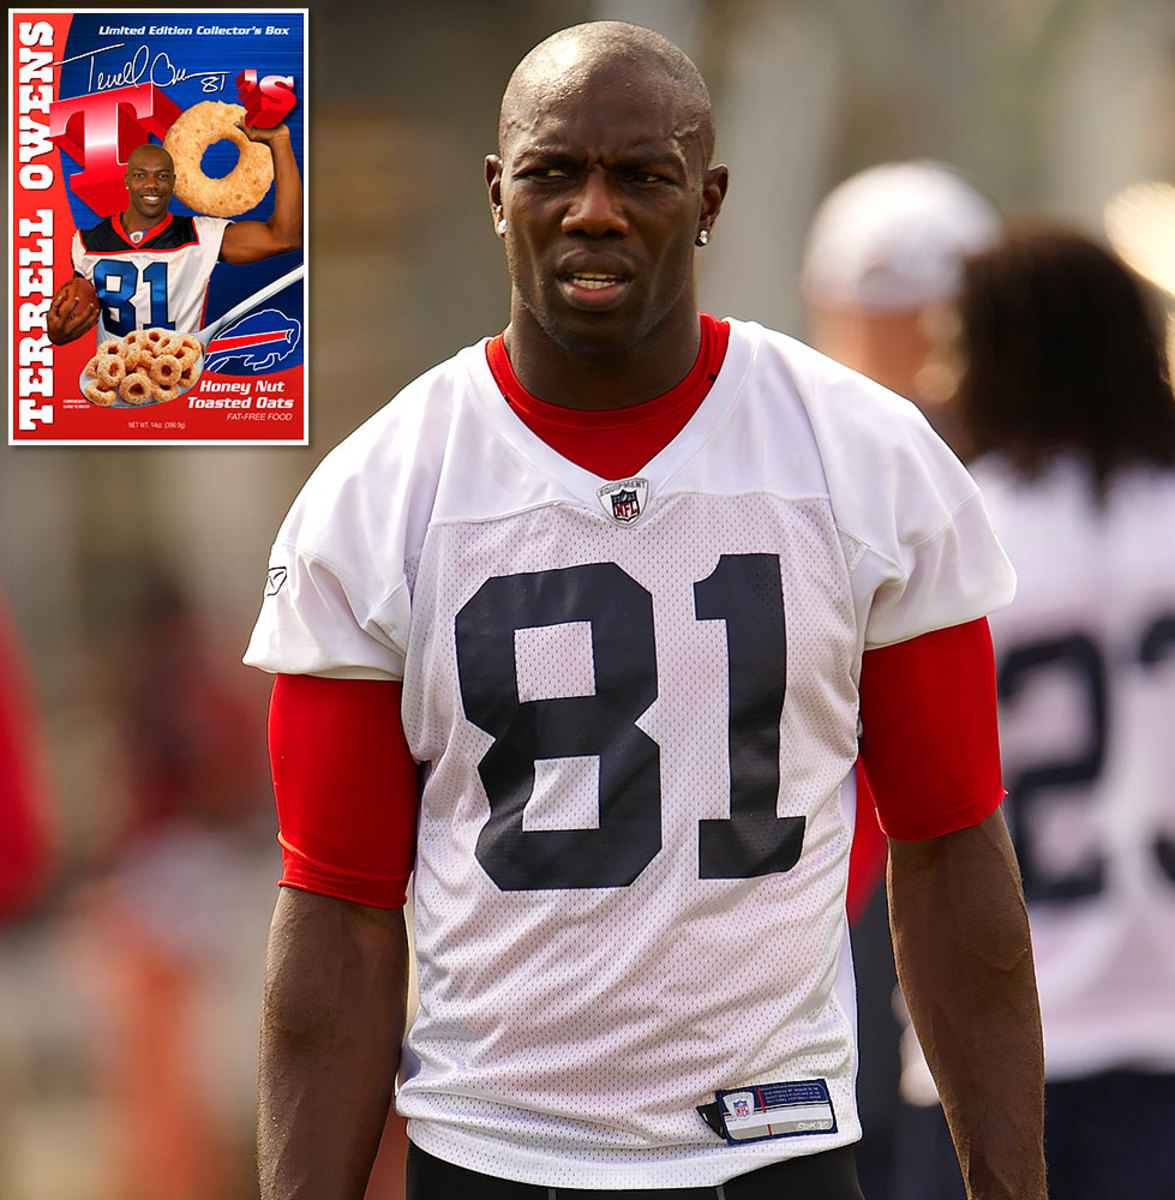 Terrell-Owens-076836303-TOs-cereal.jpg